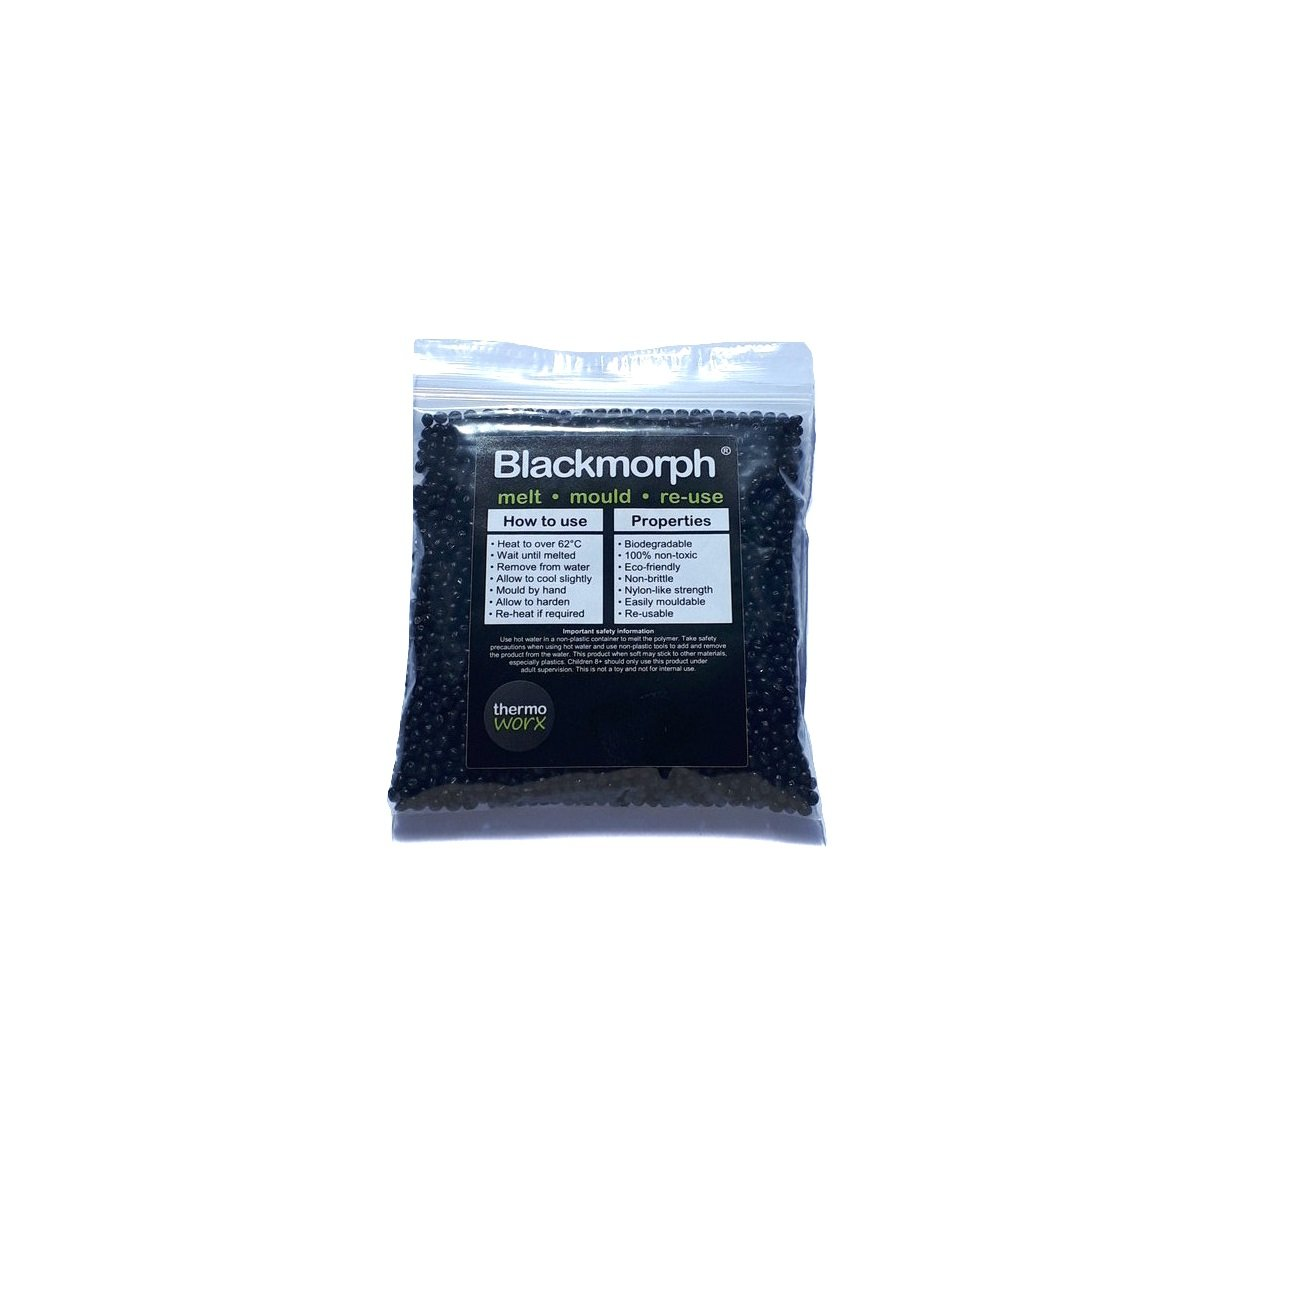 3.5oz Unlimited uses re-use Thermoworx Blackmorph Black Edition Hand moldable thermoplastic Polymer 100g Mold Biodegradable Repairs Crafts DIY eco-Friendly Melt Reusable